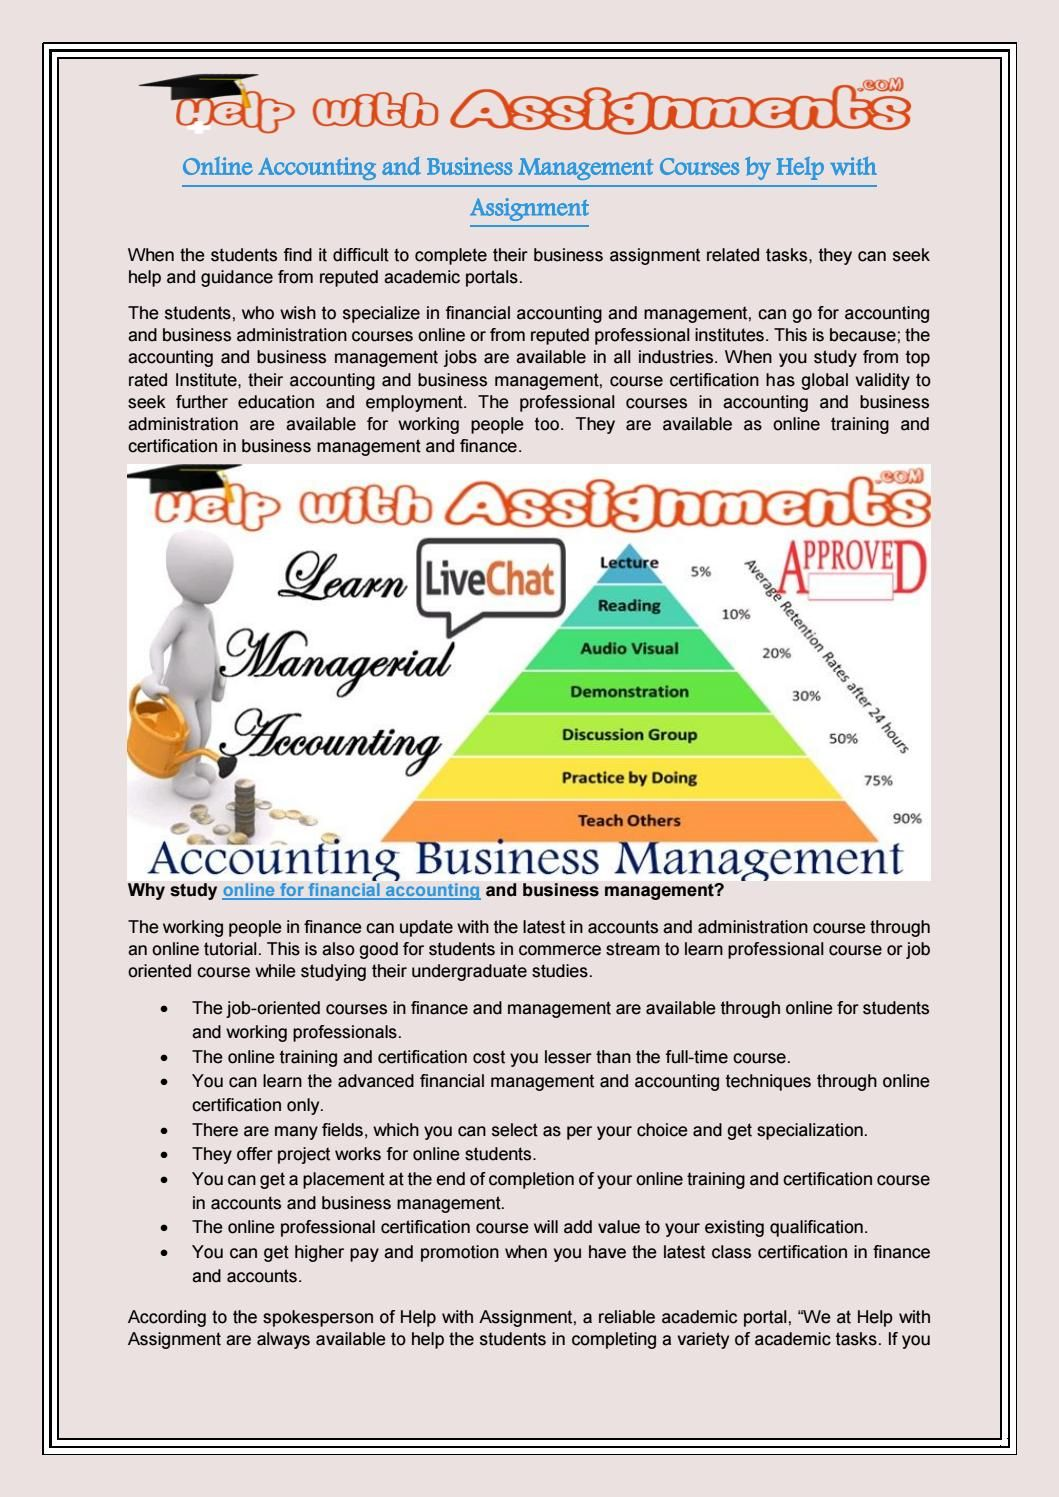 Online accounting and business management courses by help with assignment